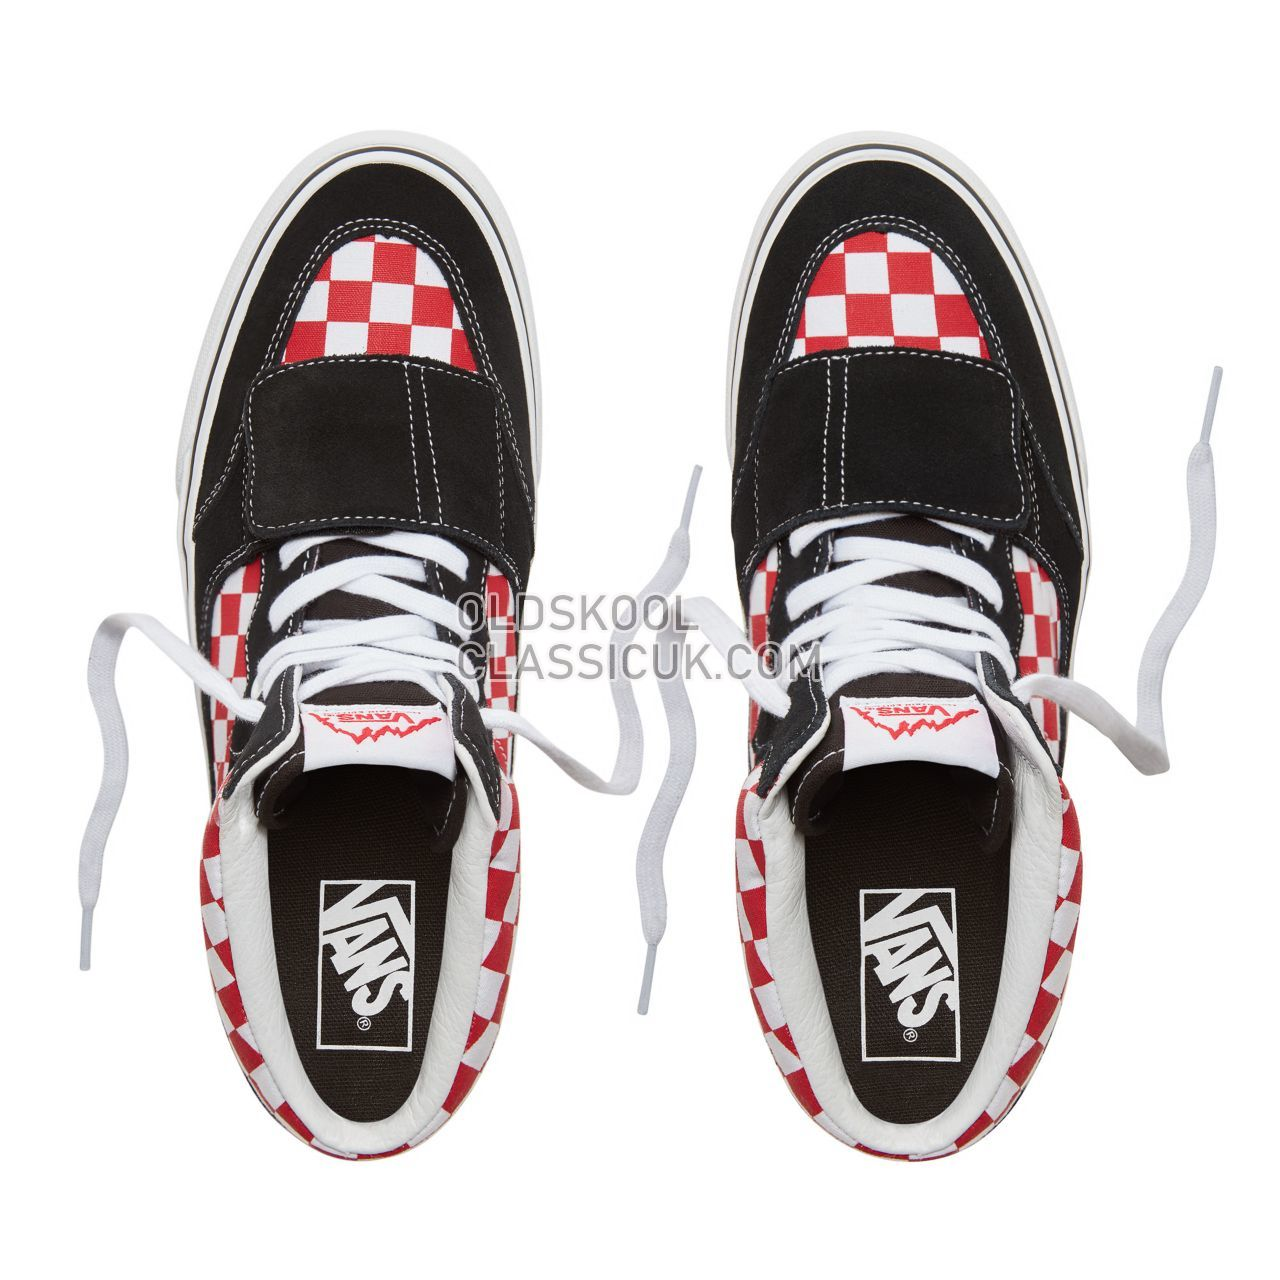 97f6587009 Vans Suede Checkerboard Mountain Edition Sneakers Mens (Checkerboard) Black  Red VA3TKG35U Shoes - £50